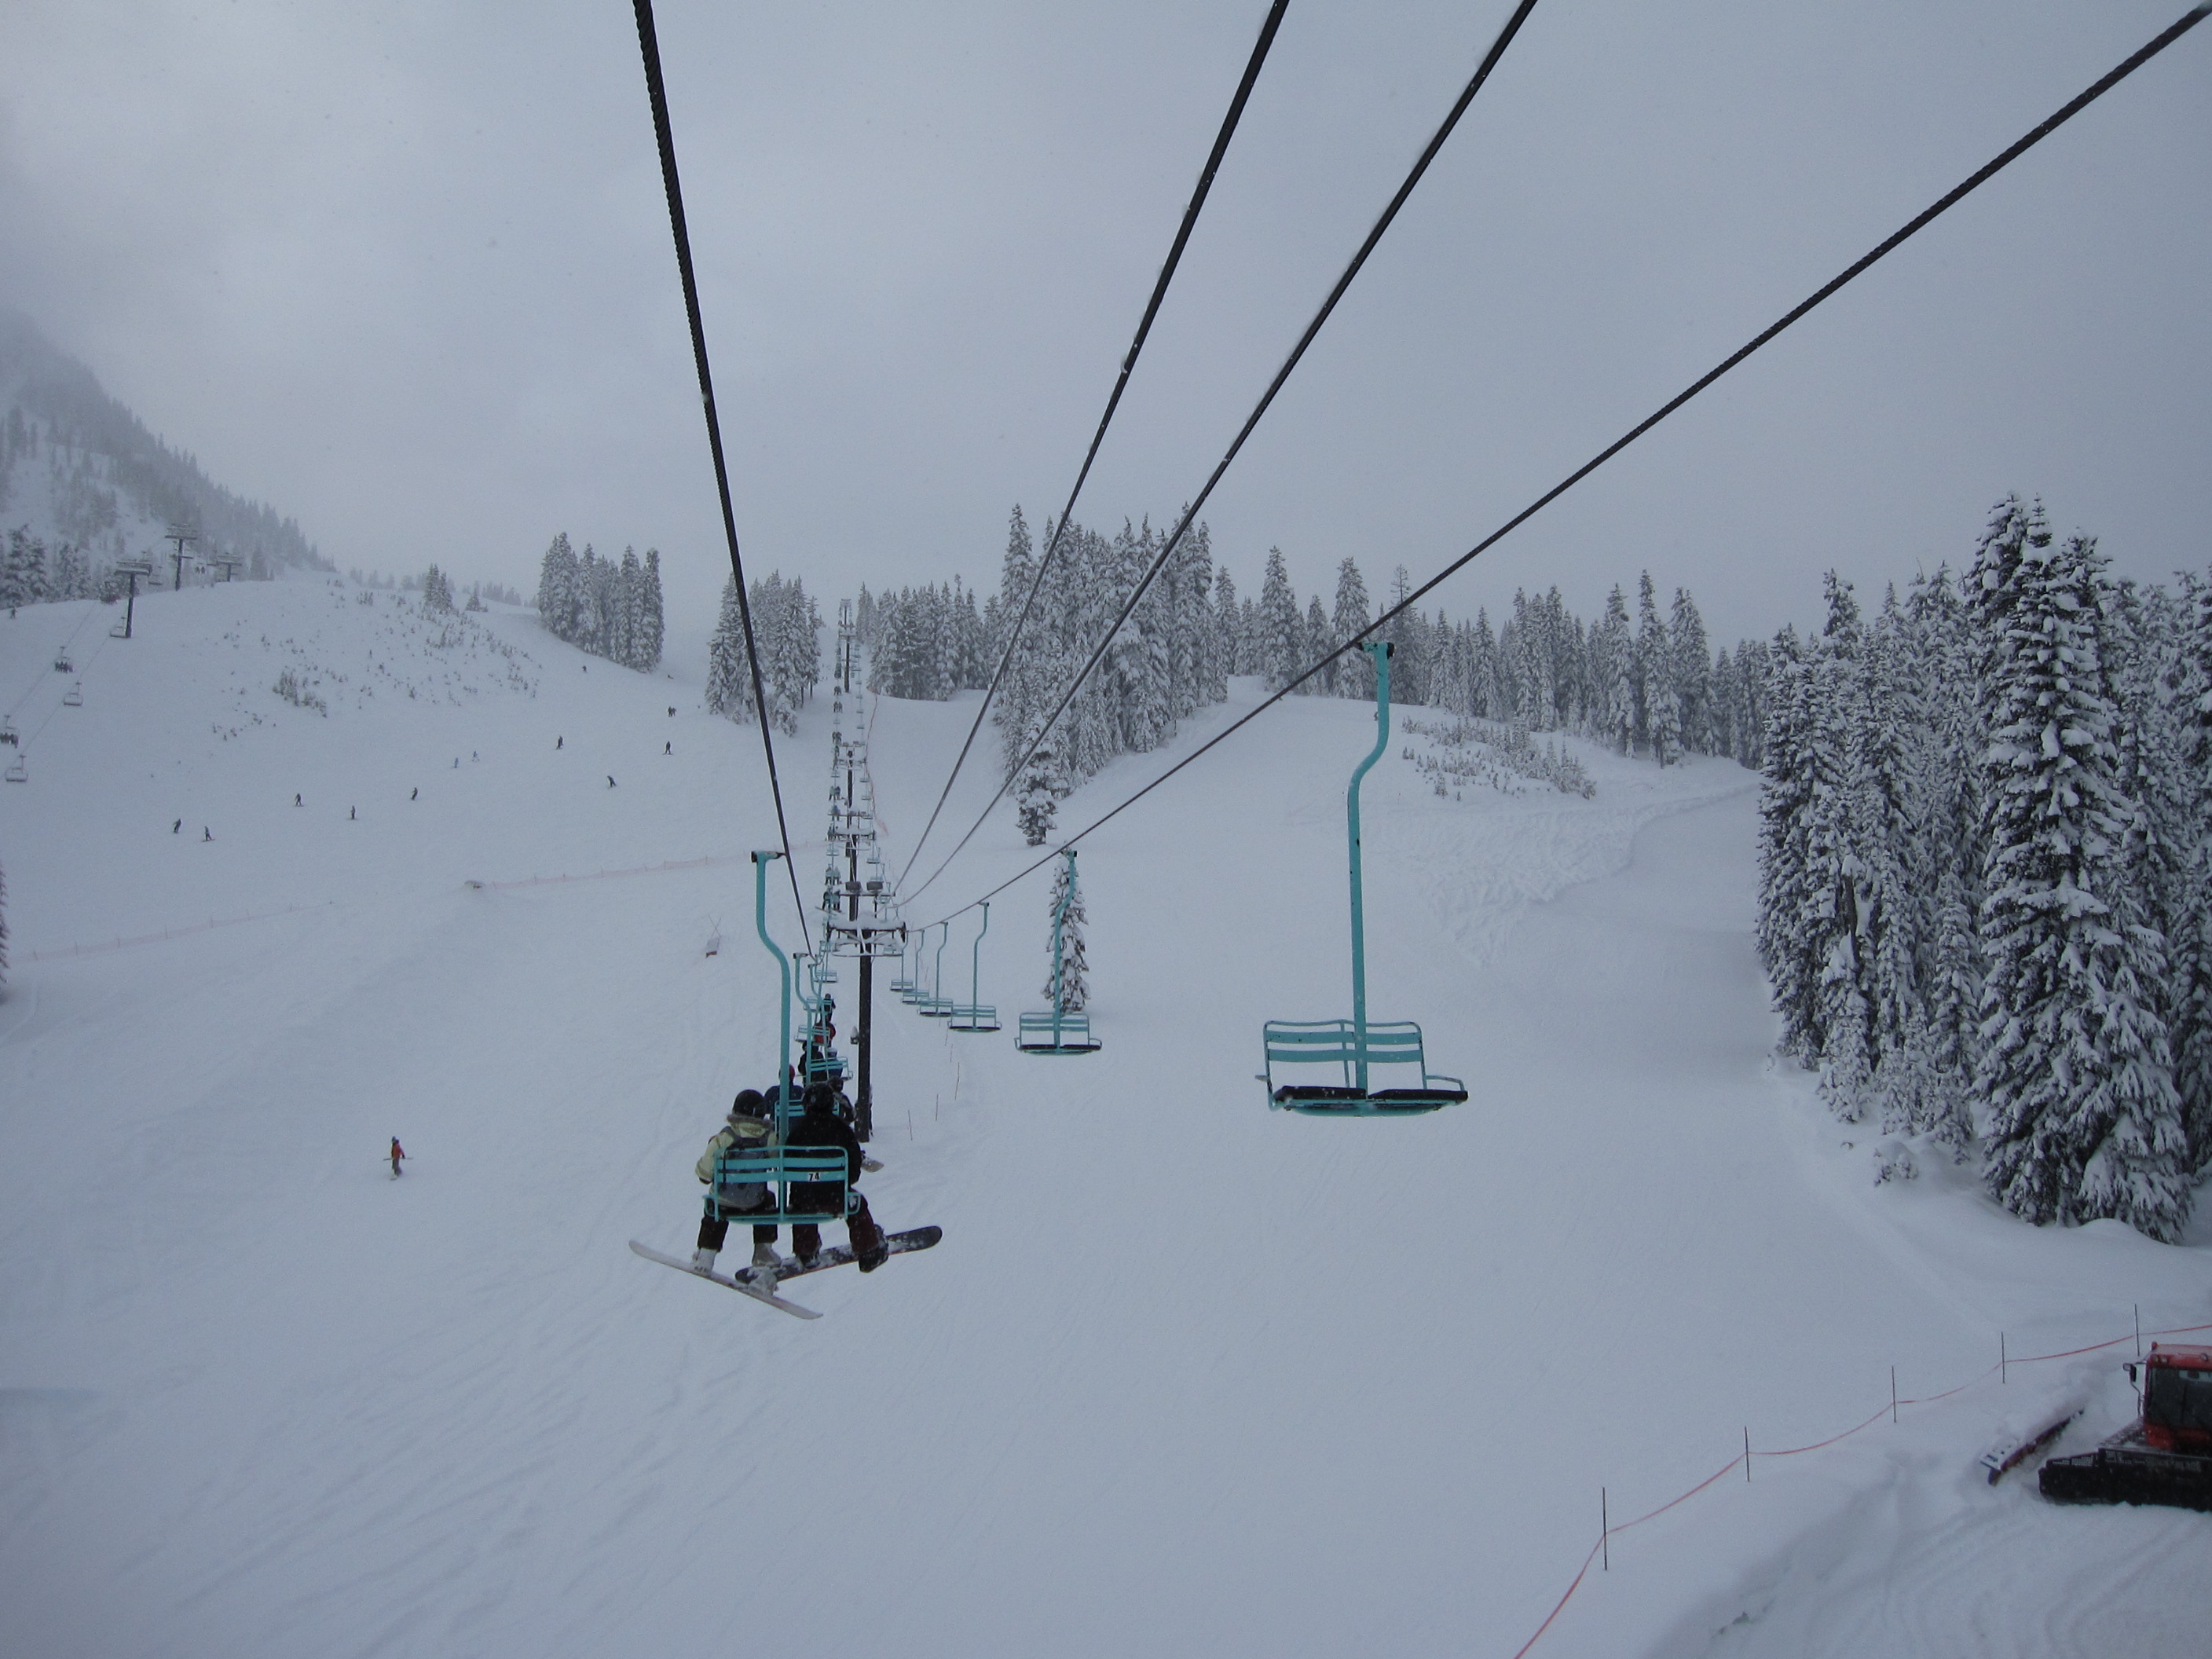 chair lift accident client chairs office furniture brooks  stevens pass wa blog